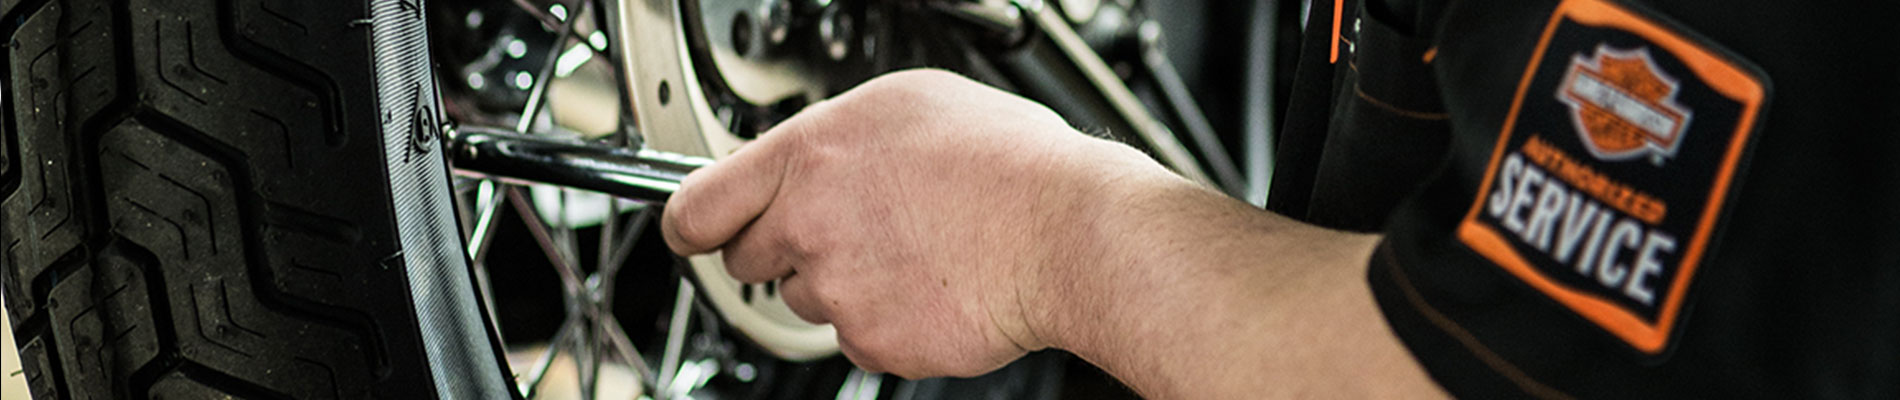 Service Department at Mike Bruno's Northshore Harley-Davidson